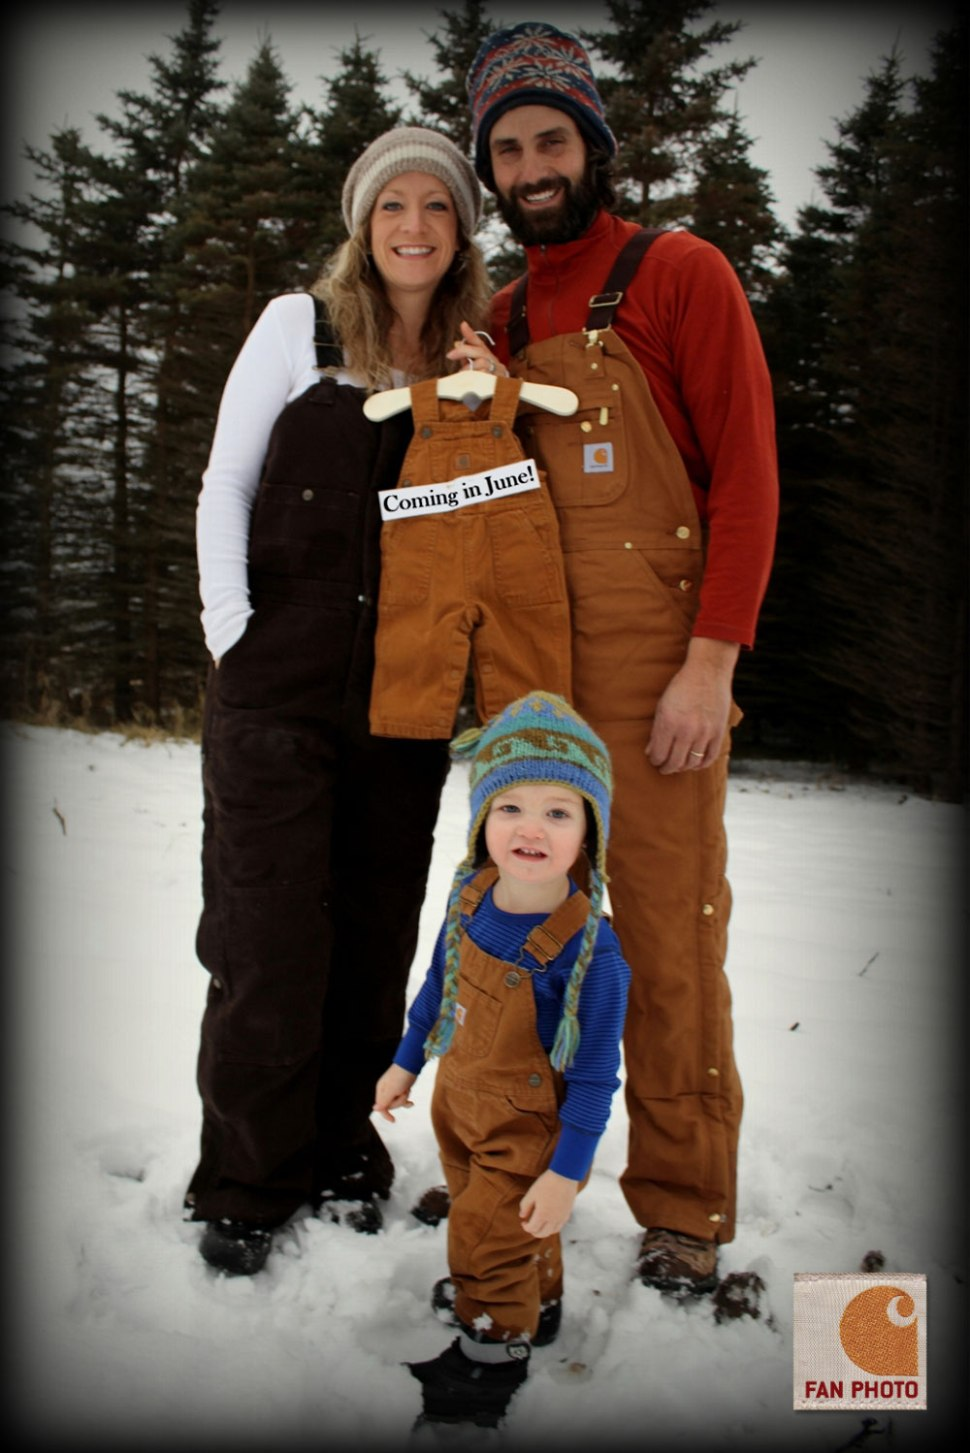 Carhartt Baby Announcement / Crafted in Carhartt